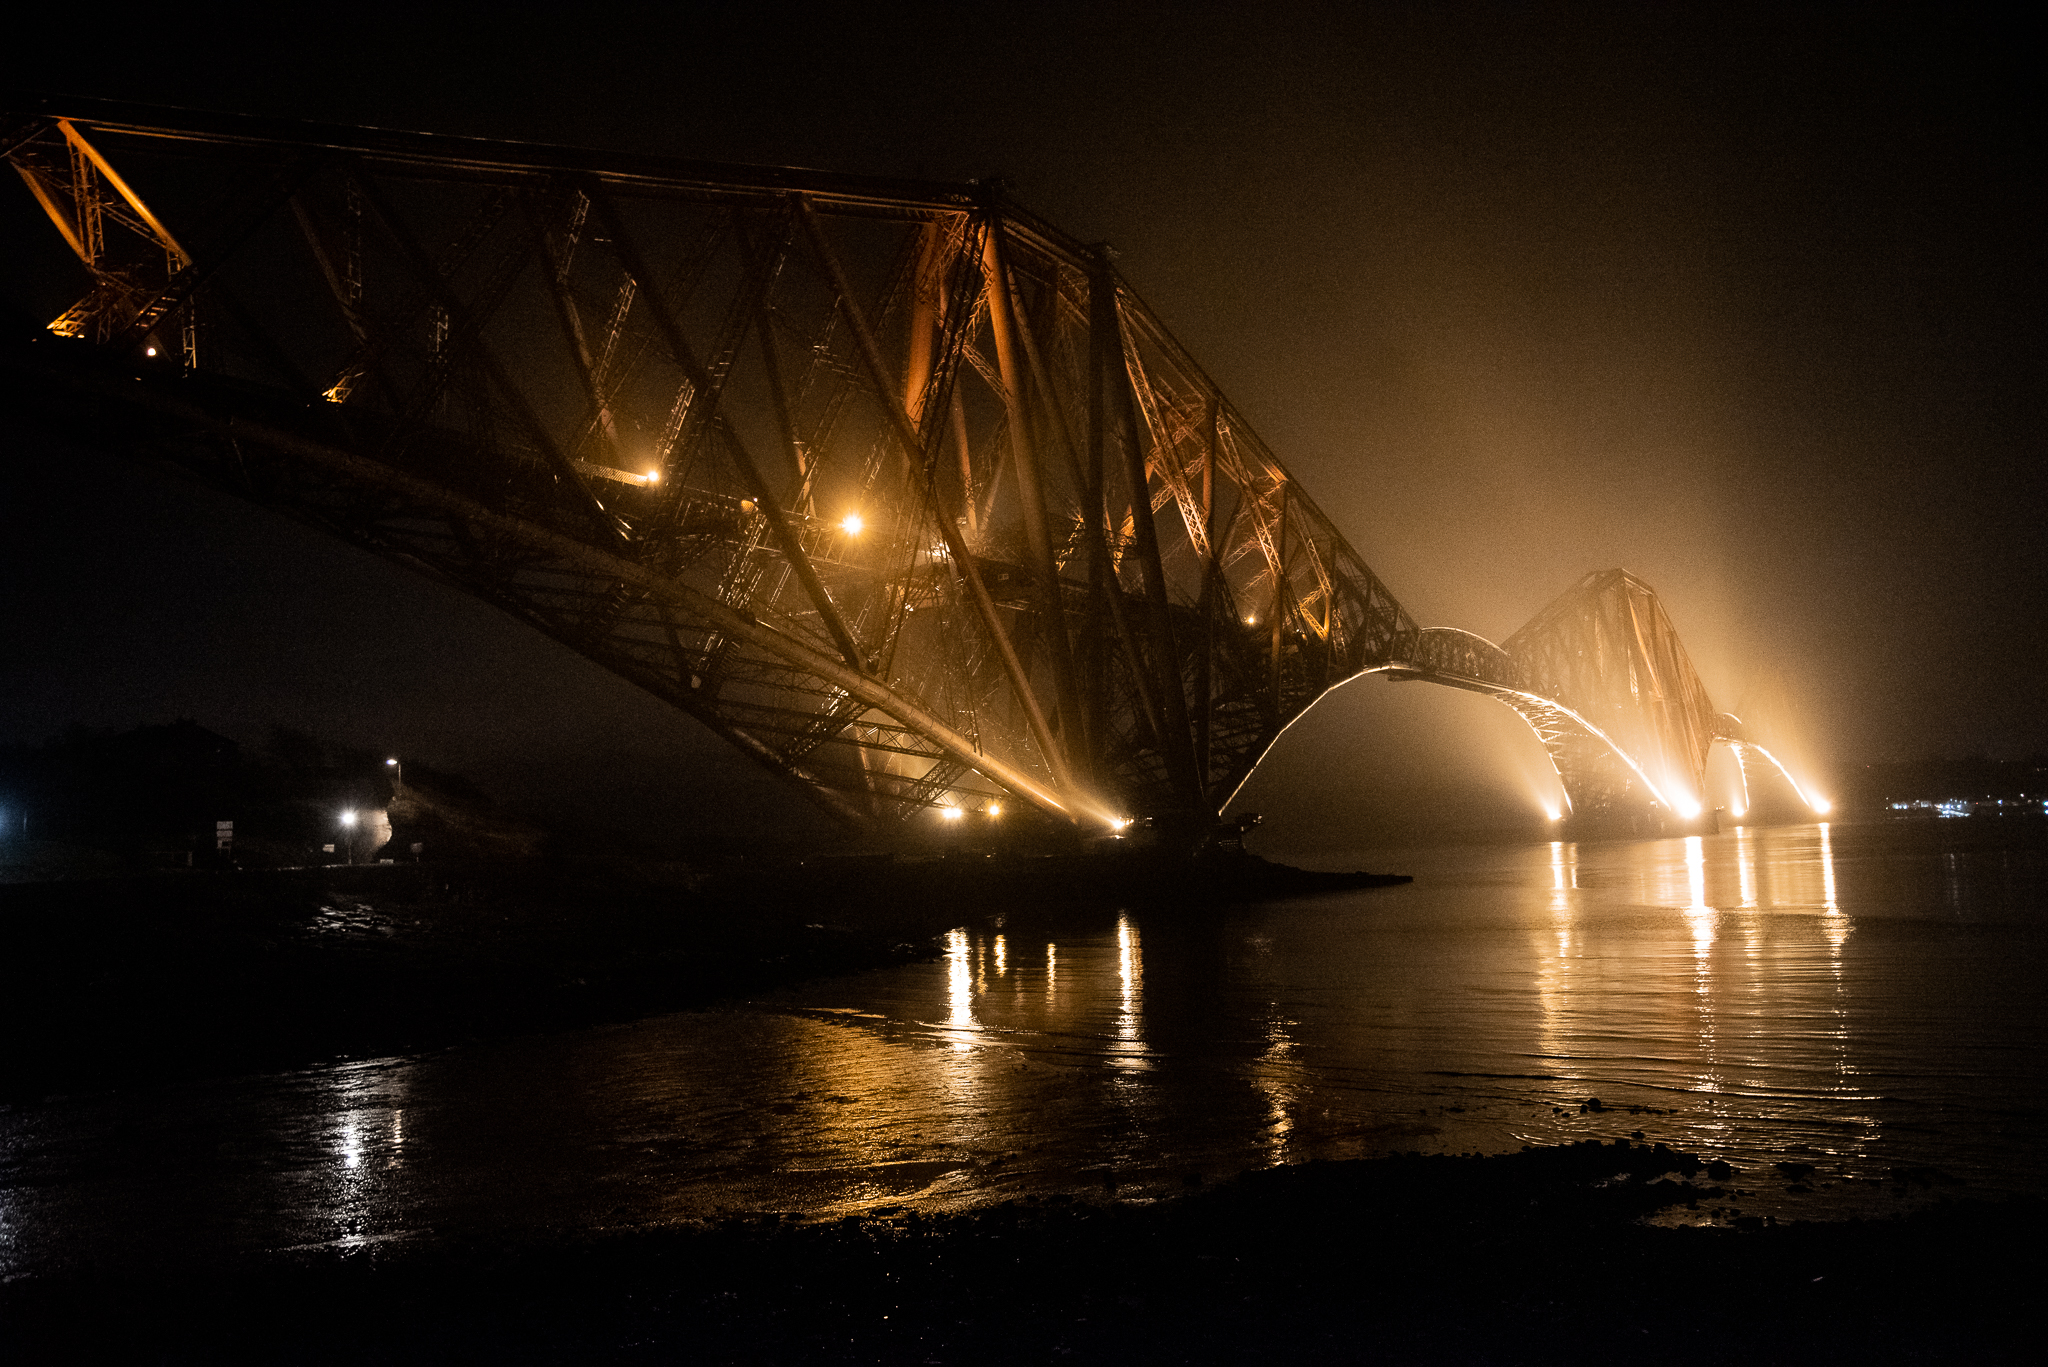 forth road bridge, east, edinburgh, scotland, night photography, bridge, architecture